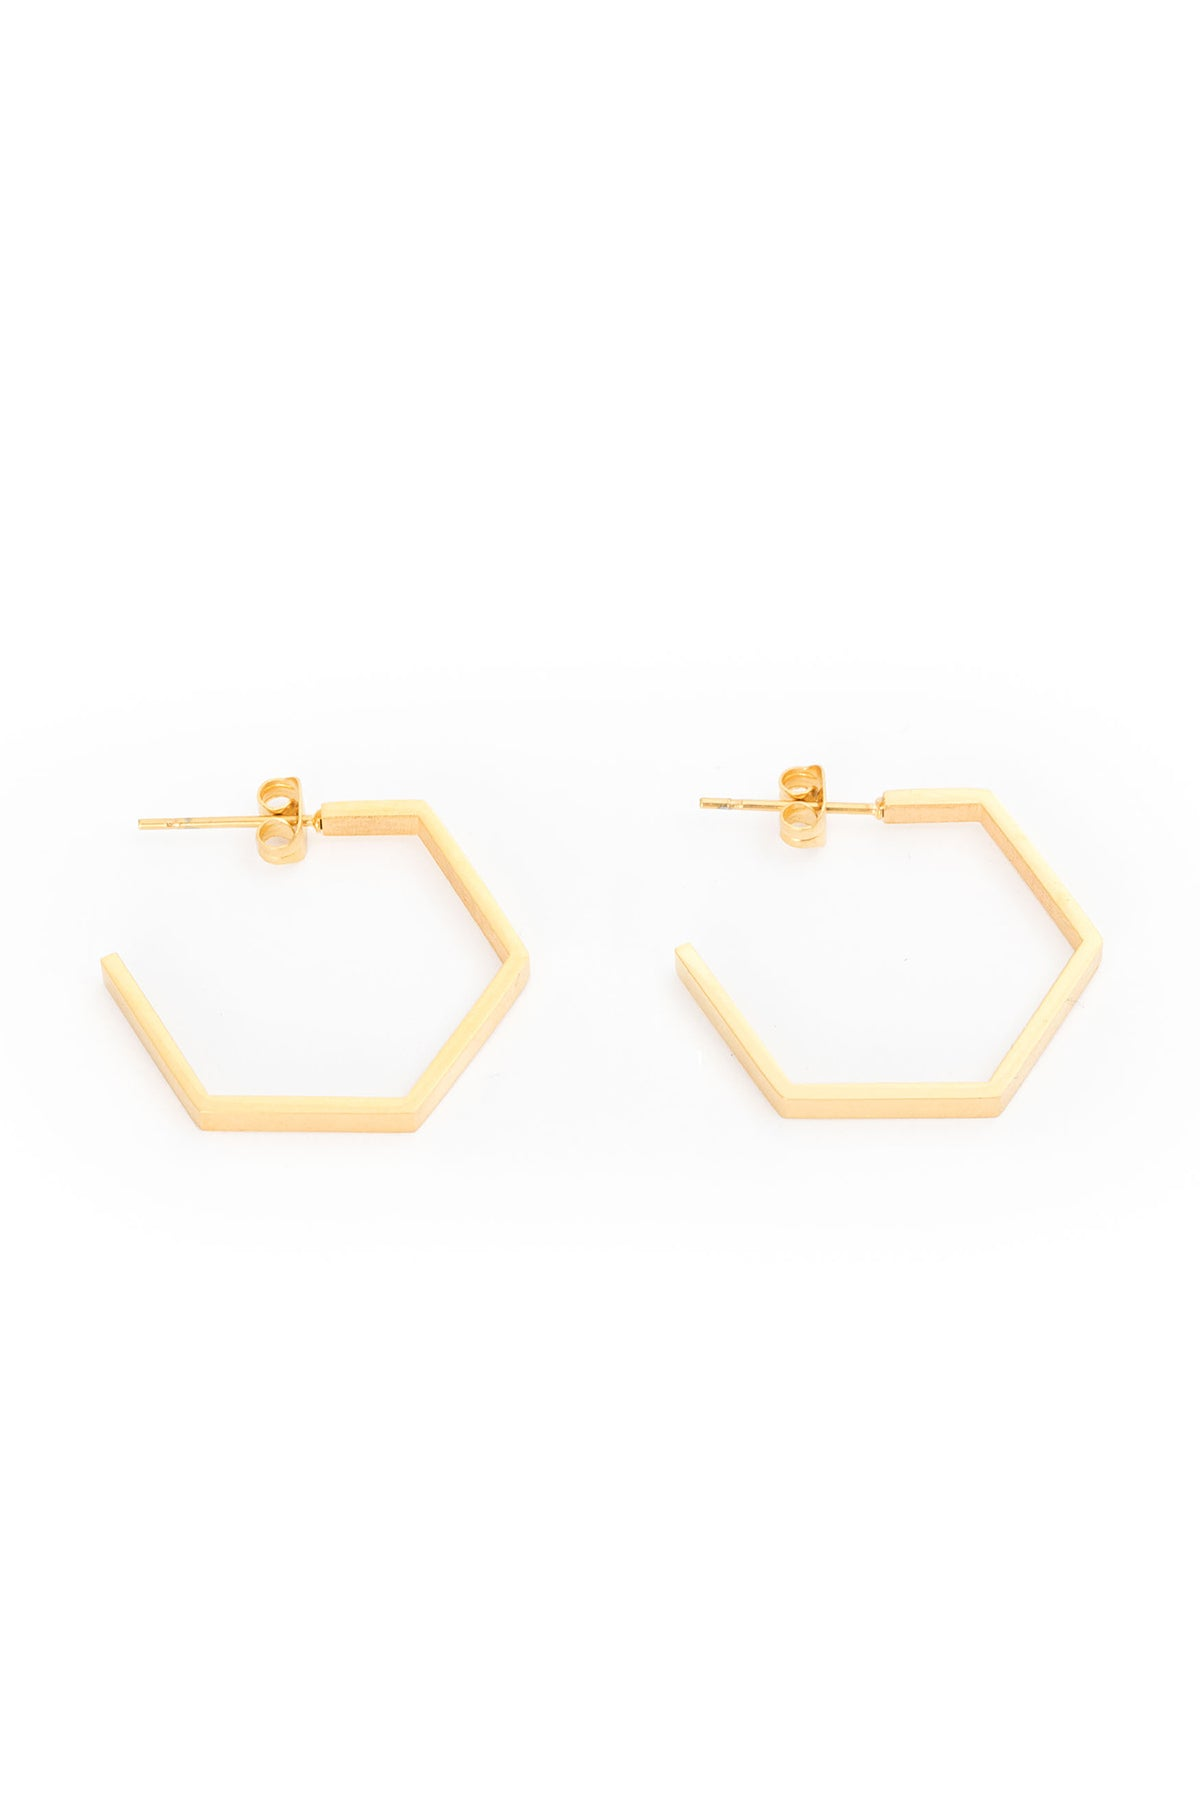 HEXAGON HOOPS by SEOUL LITTLE